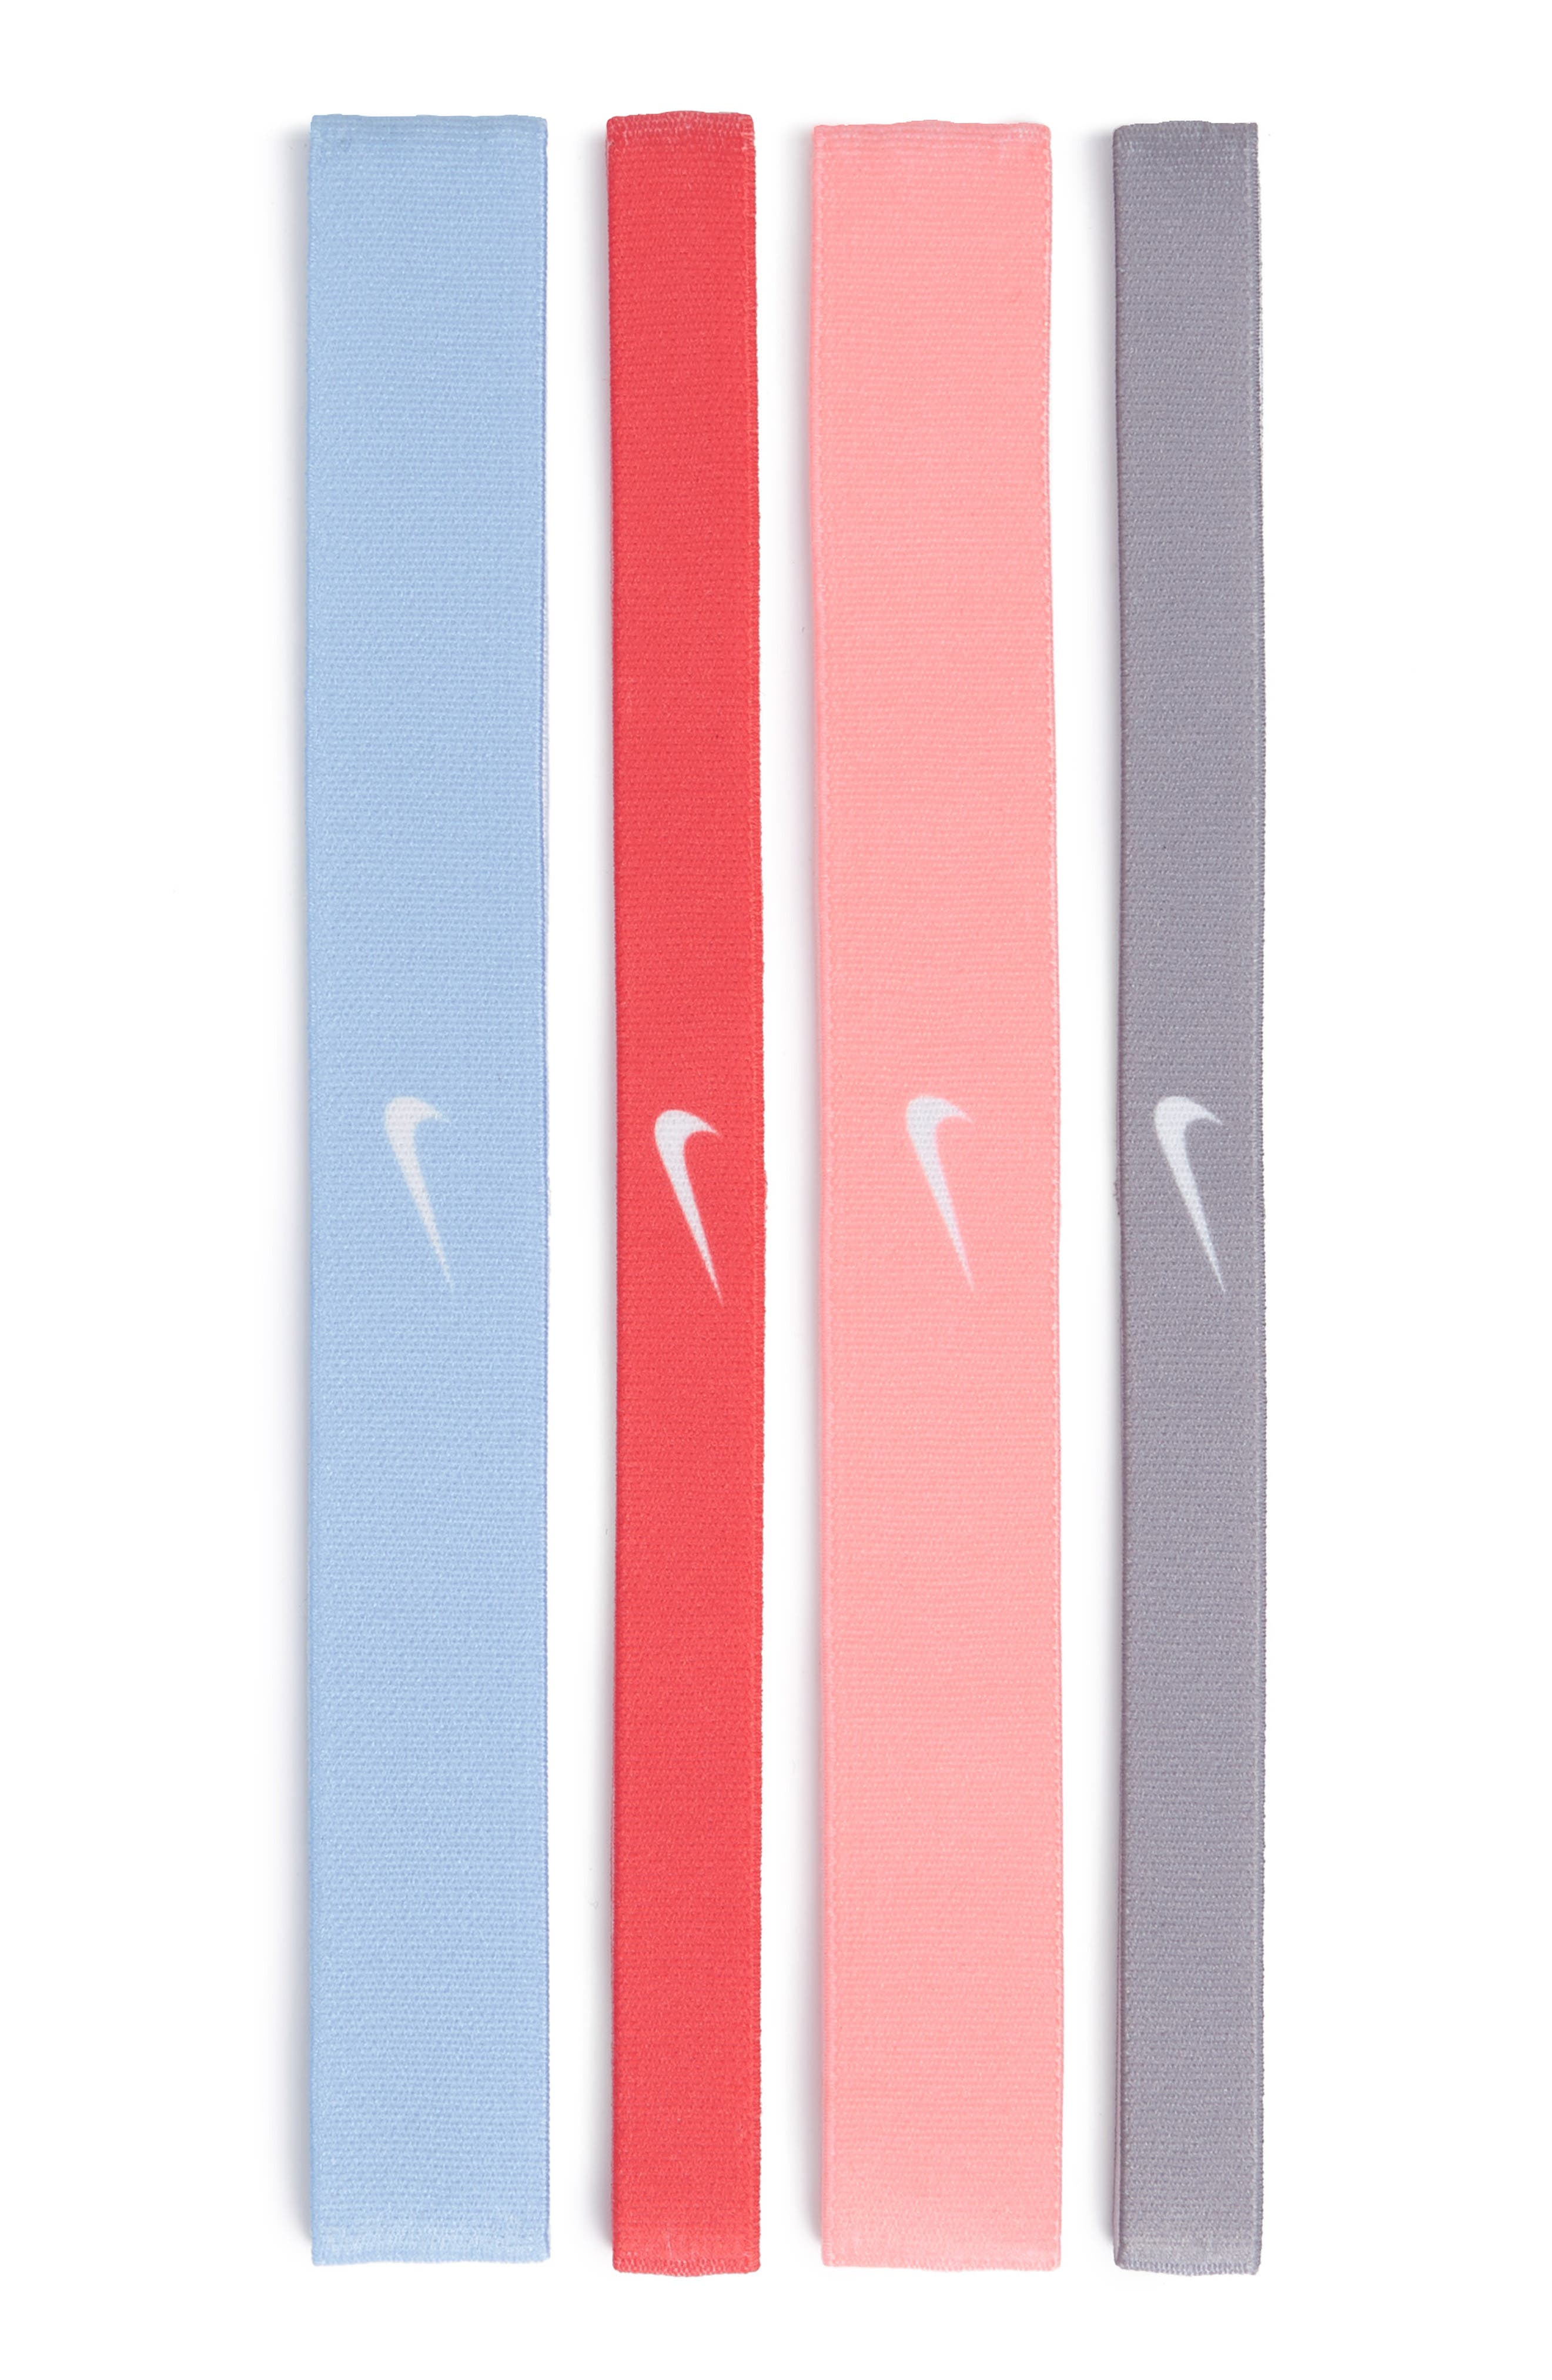 4-Pack Headbands,                             Main thumbnail 1, color,                             Grey/ Pink/ Coral